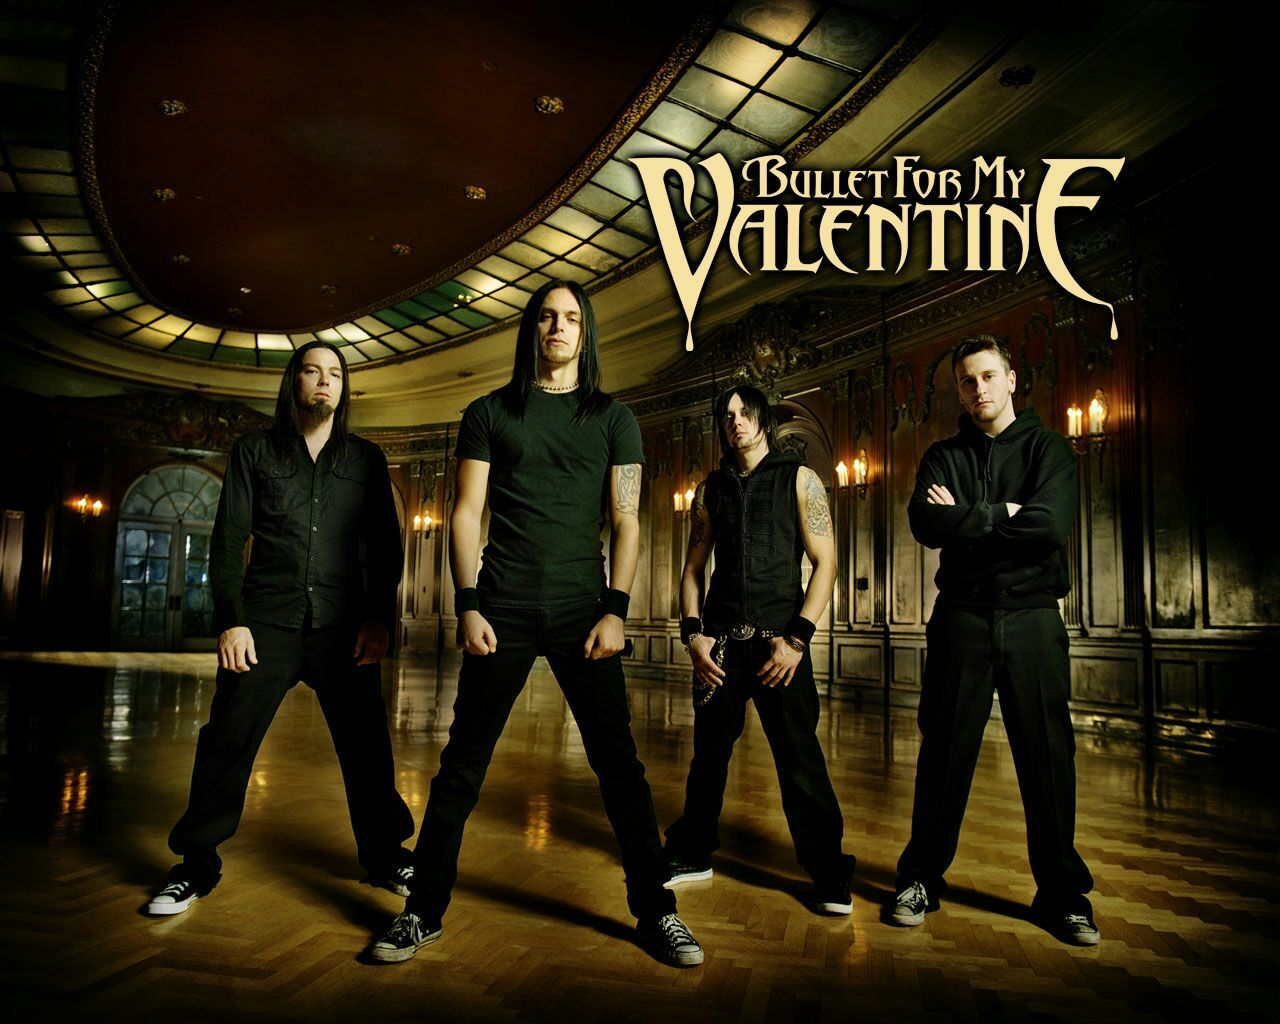 Download Top 10 Best Bullet For My Valentine Song With High Quality Audio Free Download Songs Rock Pop Metal Blues Hip Hop Jazz Reggae Count